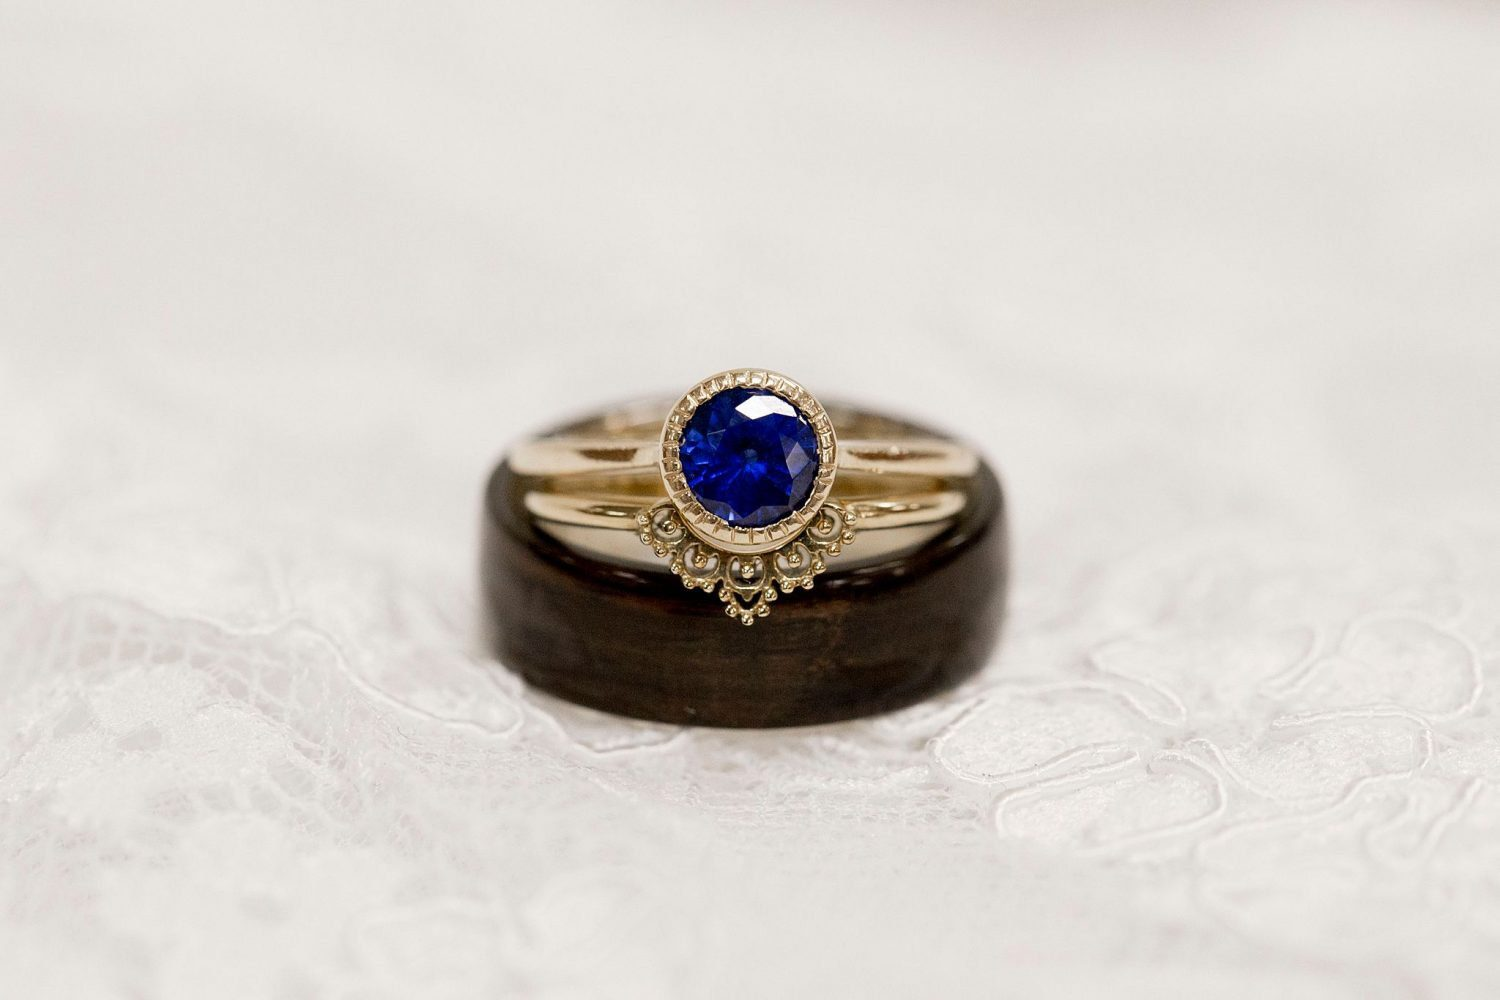 Close up of wedding rings including a vintage blue sapphire engagement ring.